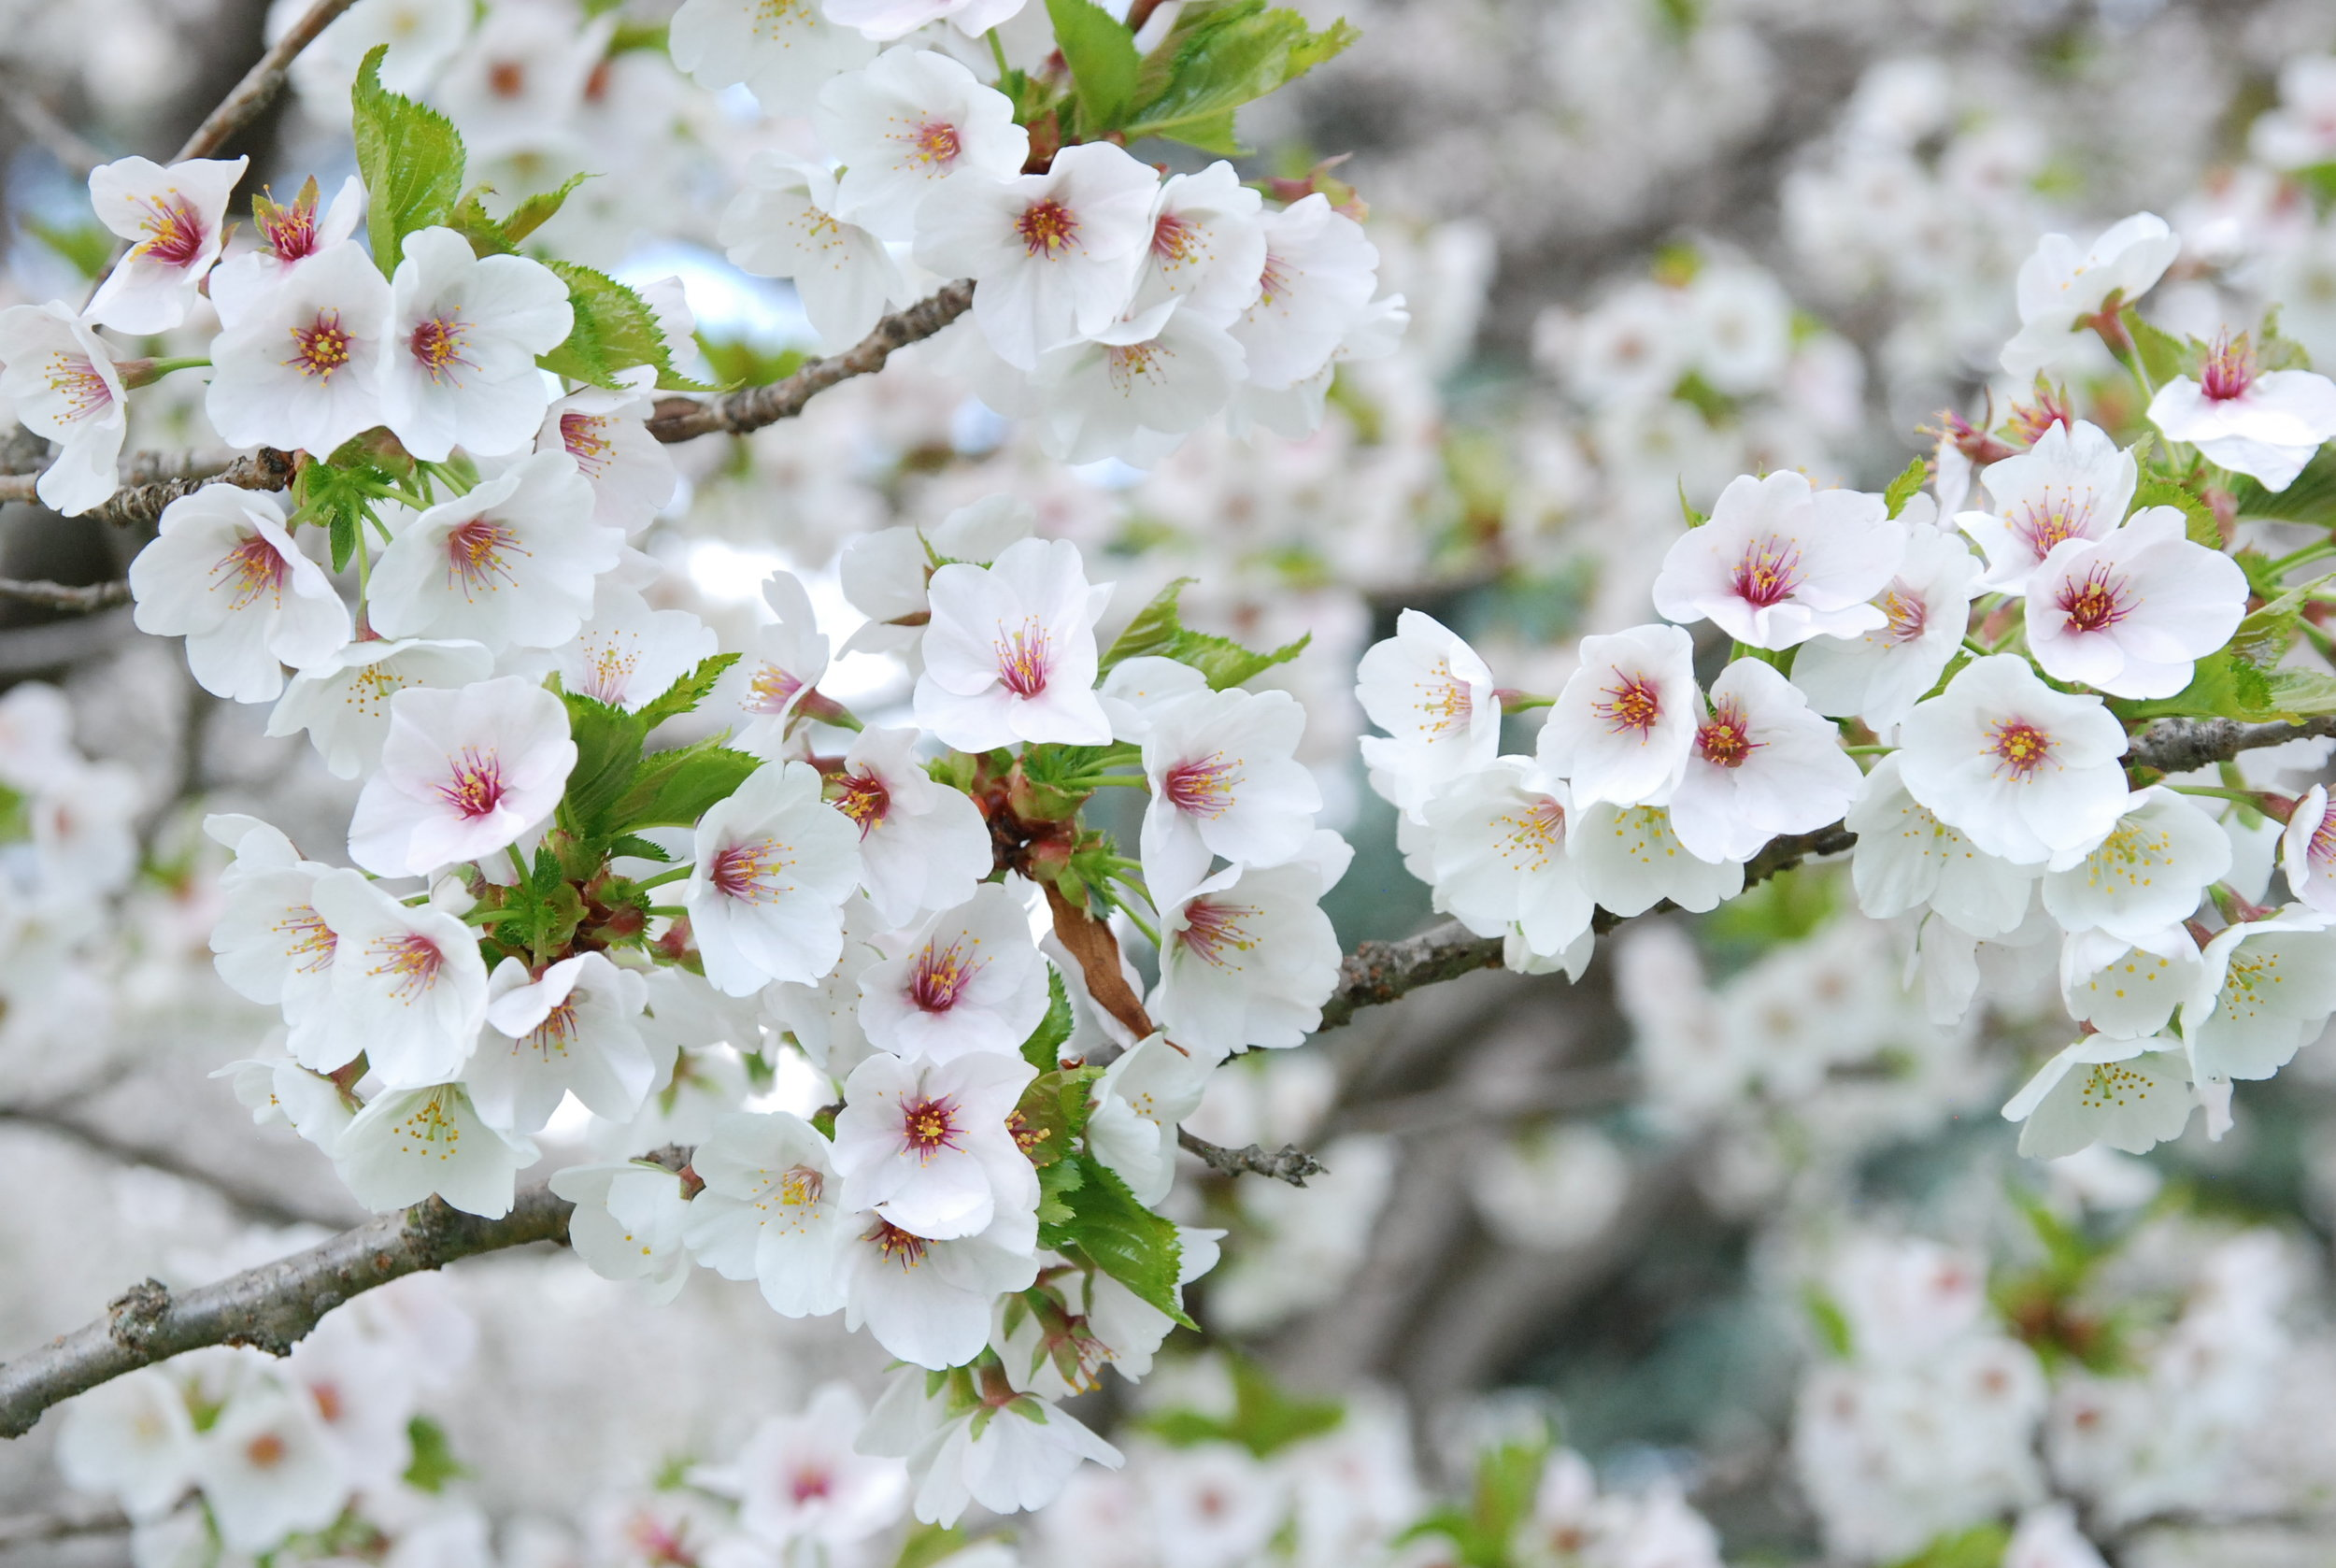 Prunus  'Umineko' inspired Collingwood Ingram to hybridize flowering cherries after he began to amass a collection. He named this chance seedlings after the Japanese word for seagull since the tight clusters of flowers reminded him flocks of seagulls congregating closely together.